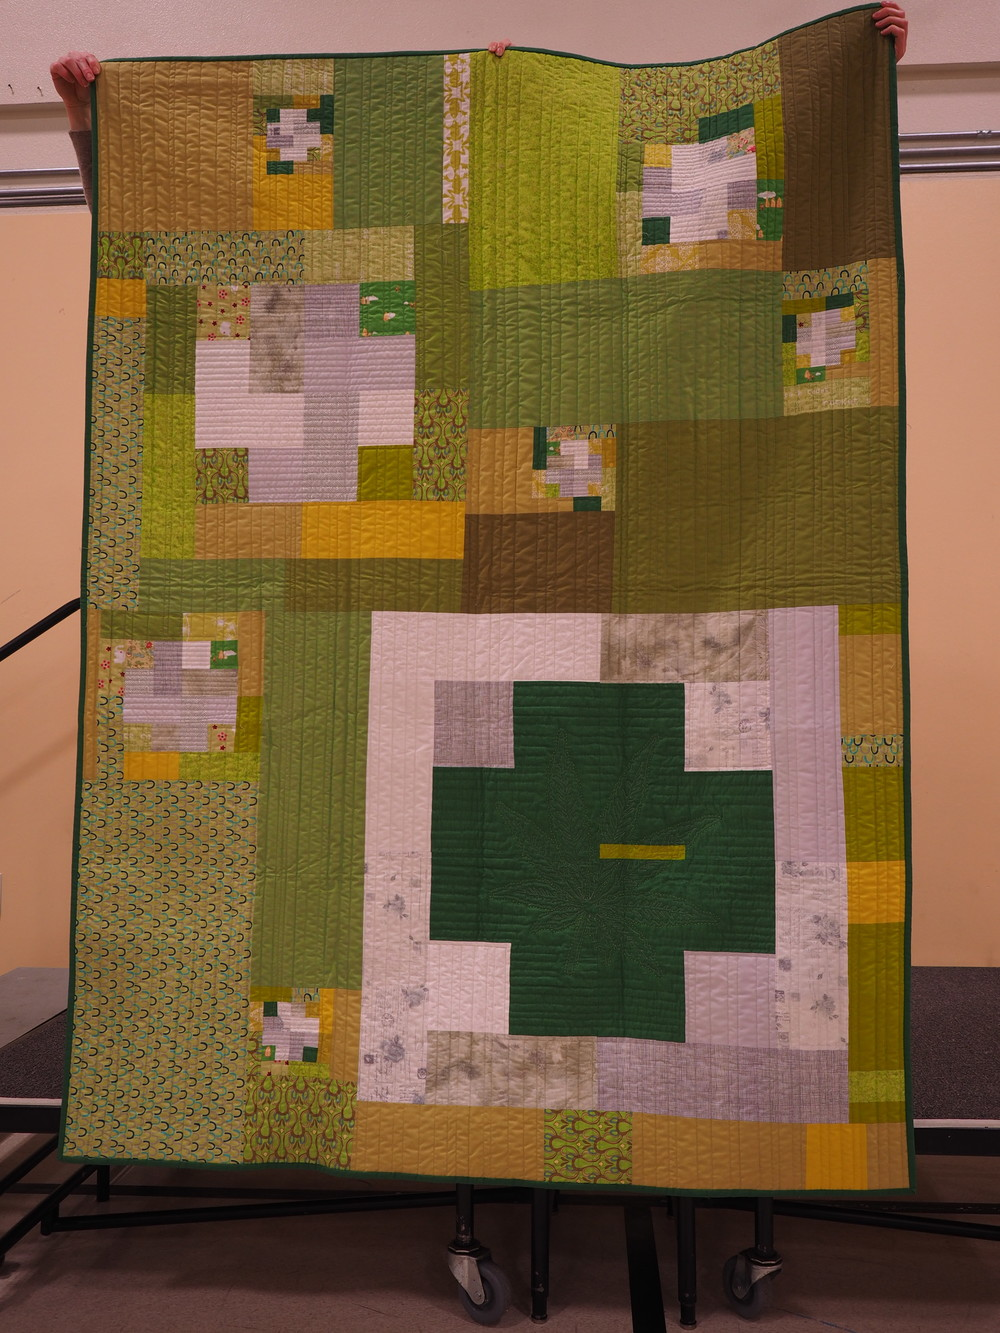 Gail Weiss   Green Cross Quilt  @gweiss23  Modern Cross Block by Susan Beal  Created to commemorate the passing of measure 91 (cannabis legalization) - Her QuiltCon Reject